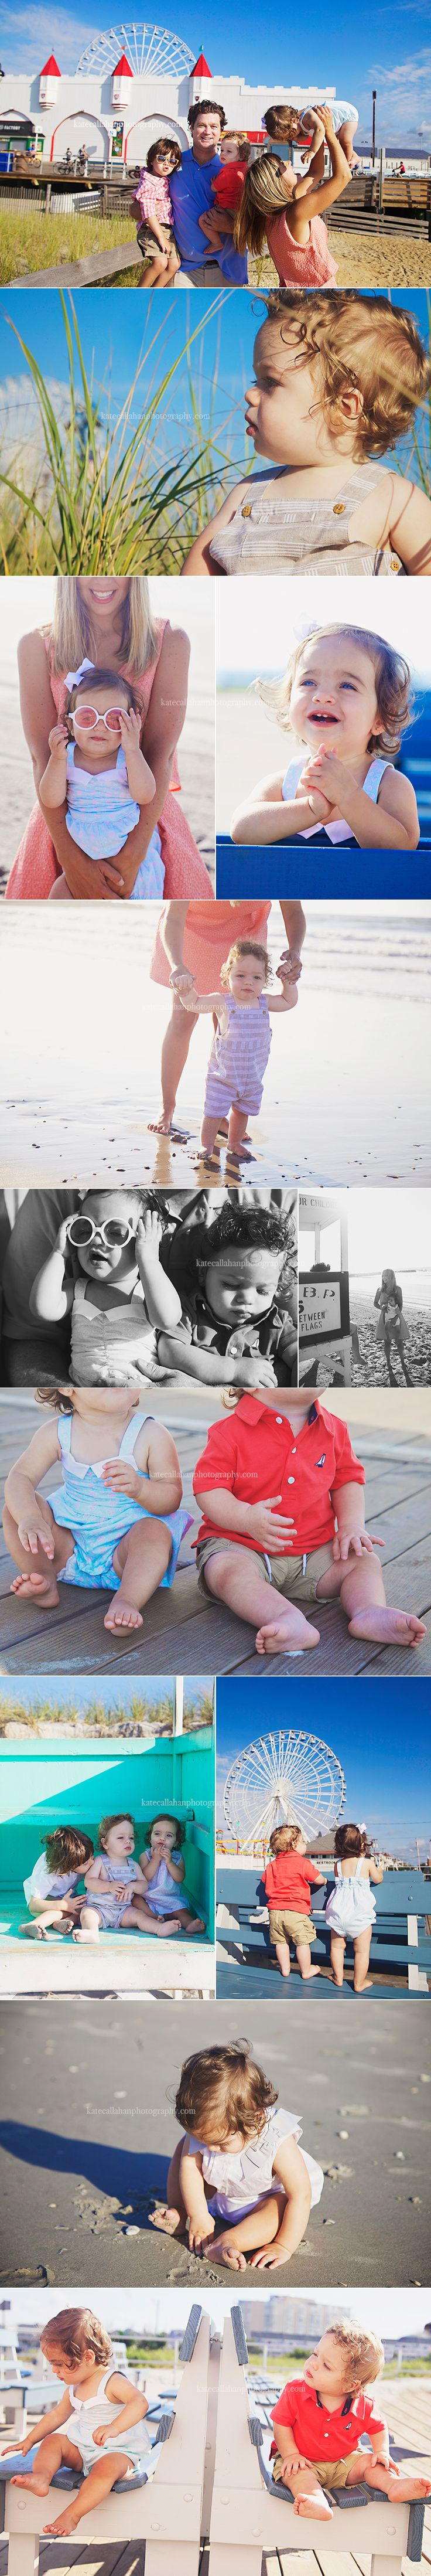 beach babies! — Ocean City, NJ family photographer | Hudson Valley, NY child, family, newborn, senior photographer -- Kate Callahan Photography -- also serving, NYC, DE, MD, NJ, PA